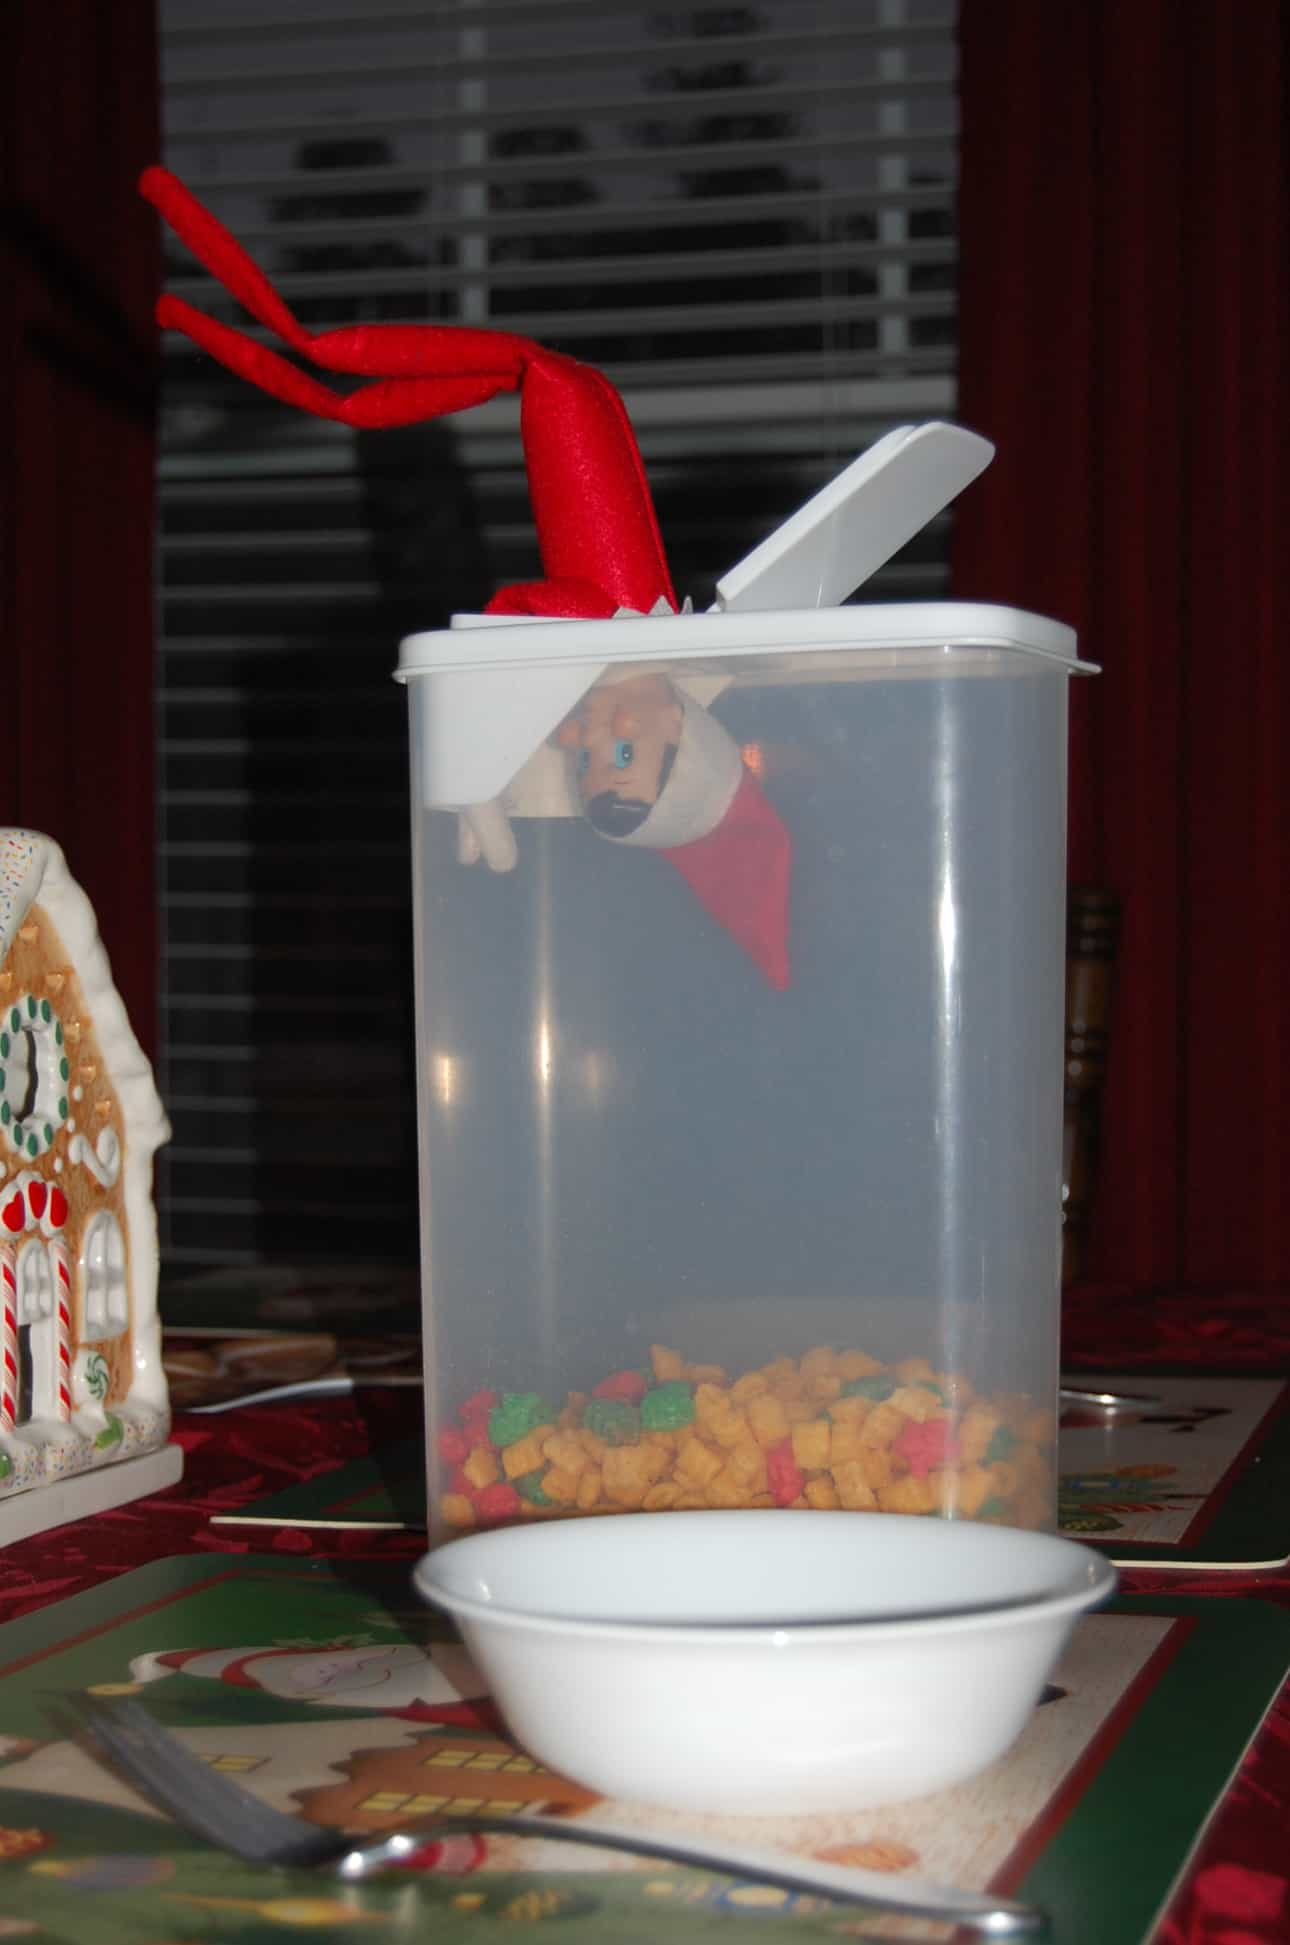 61. Elfie caught Stealing Cereal